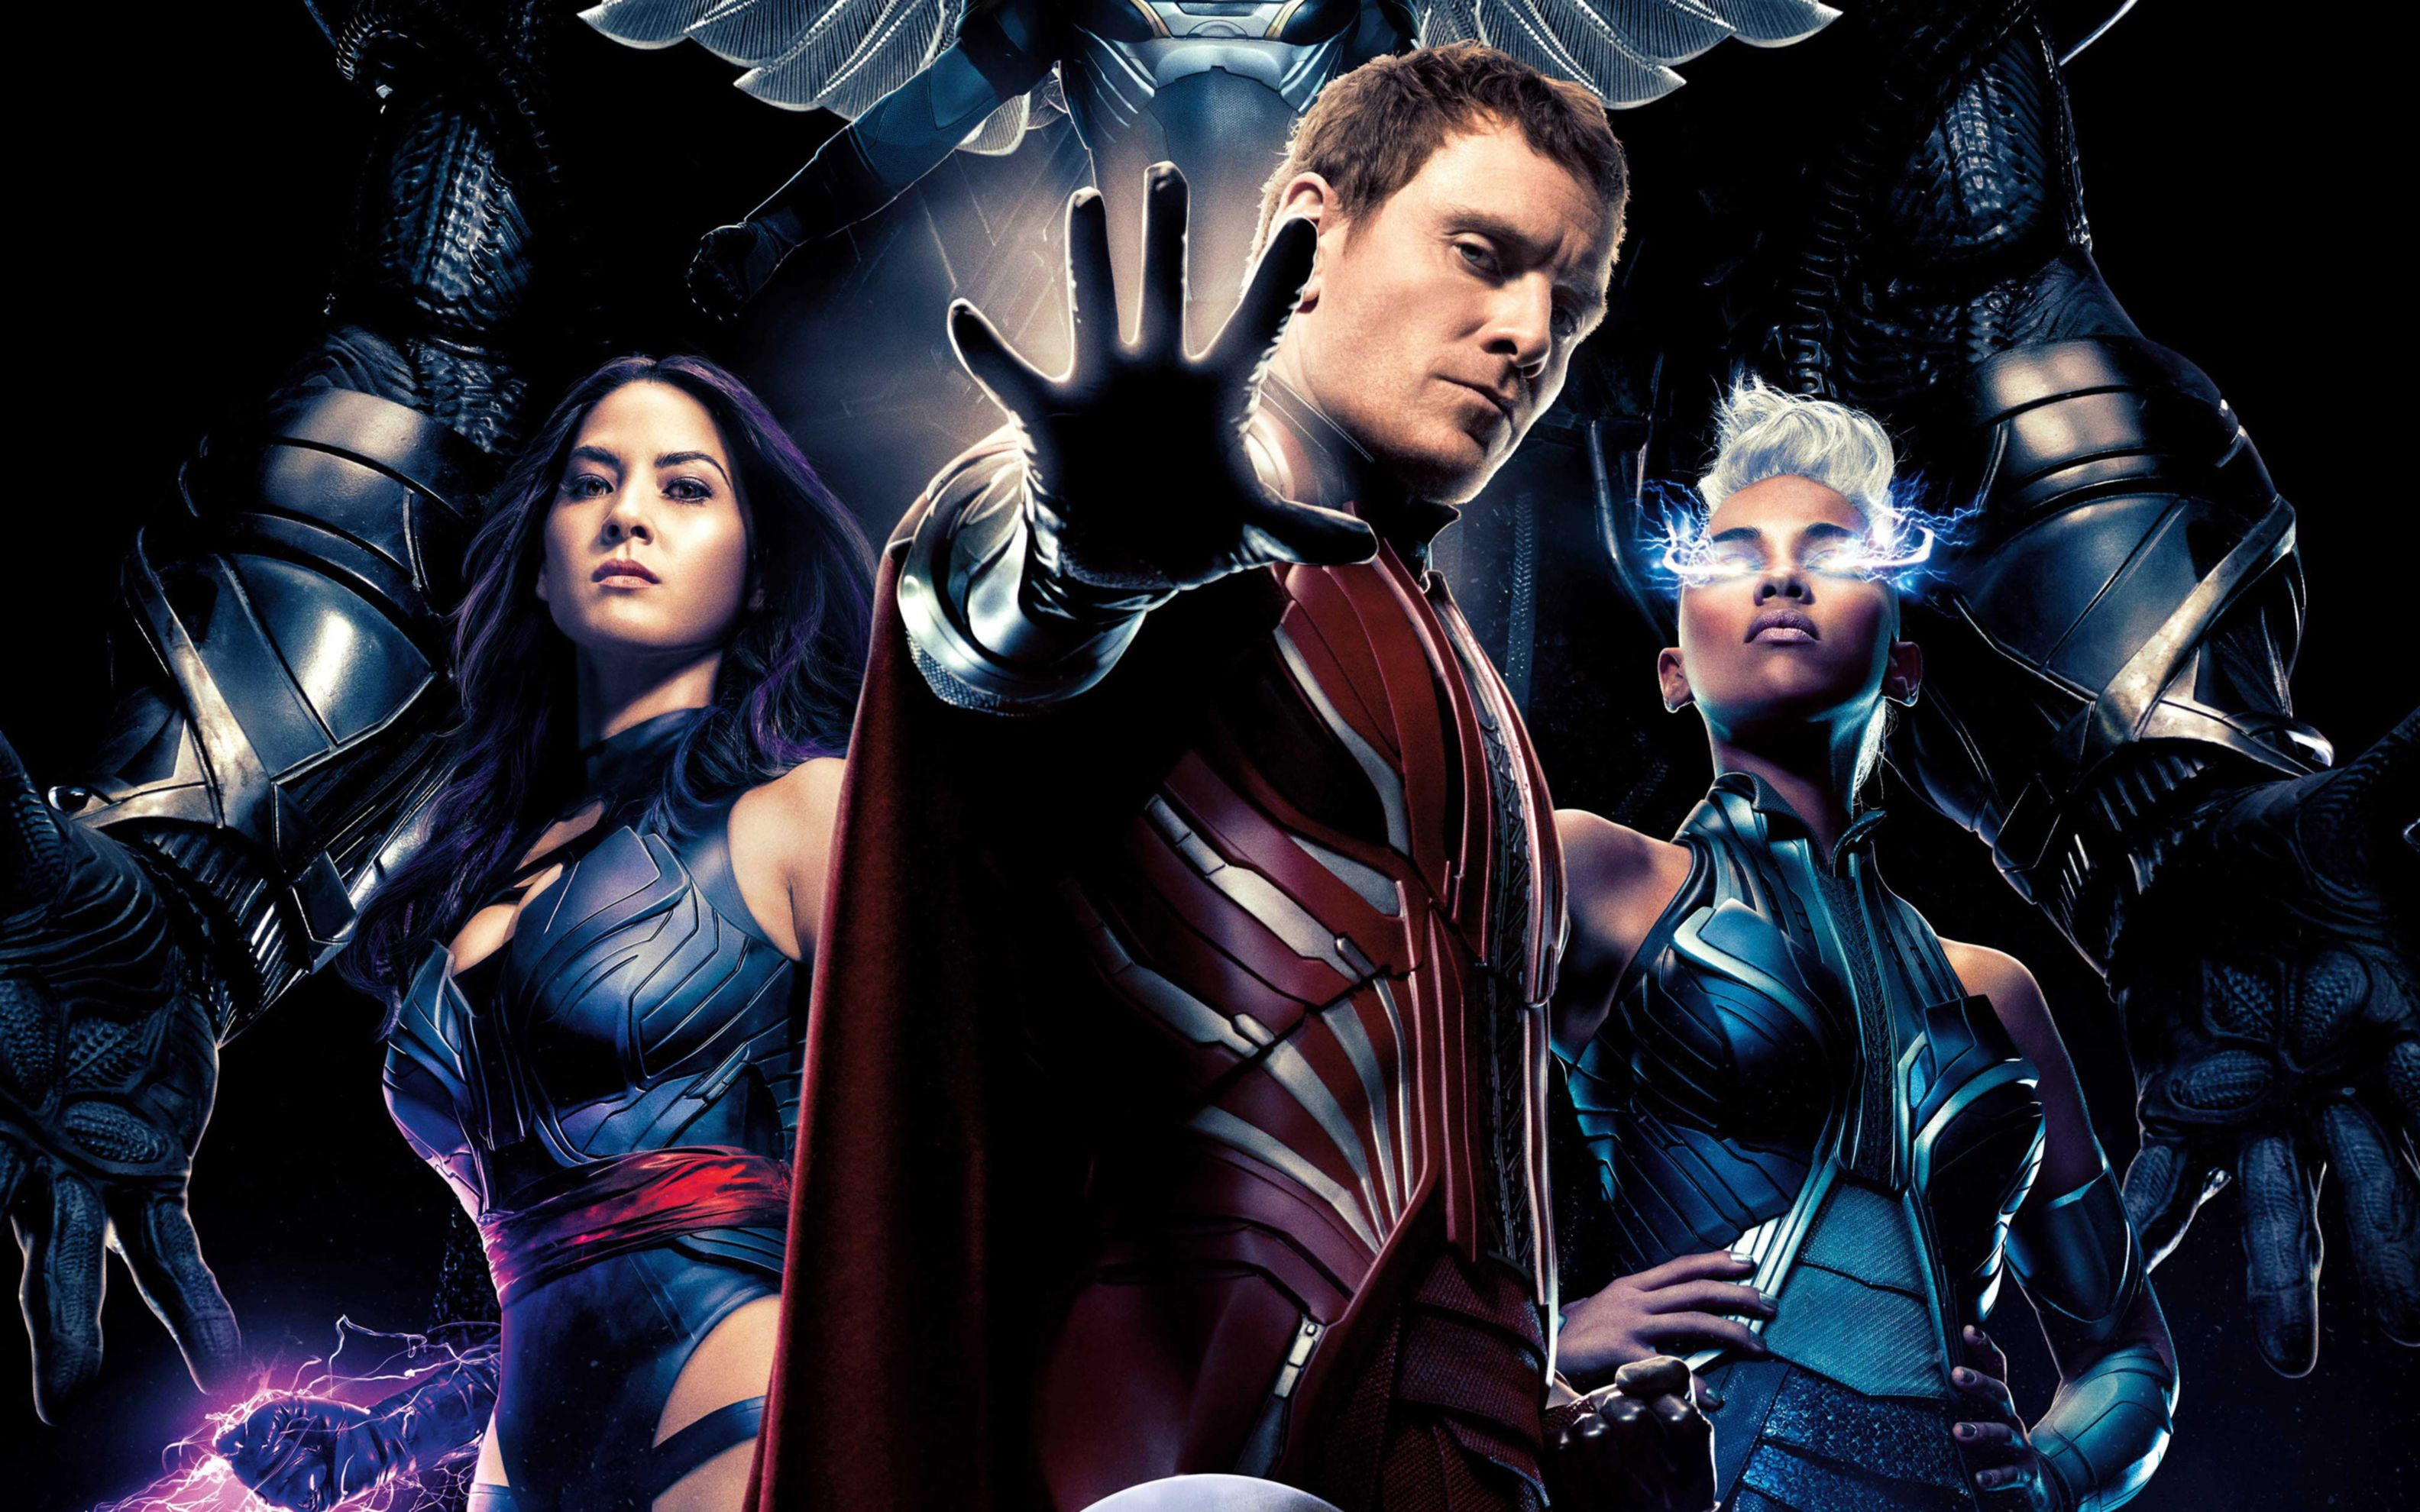 Download free HD X Men Apocalypse 2016 Wide Wallpaper, image